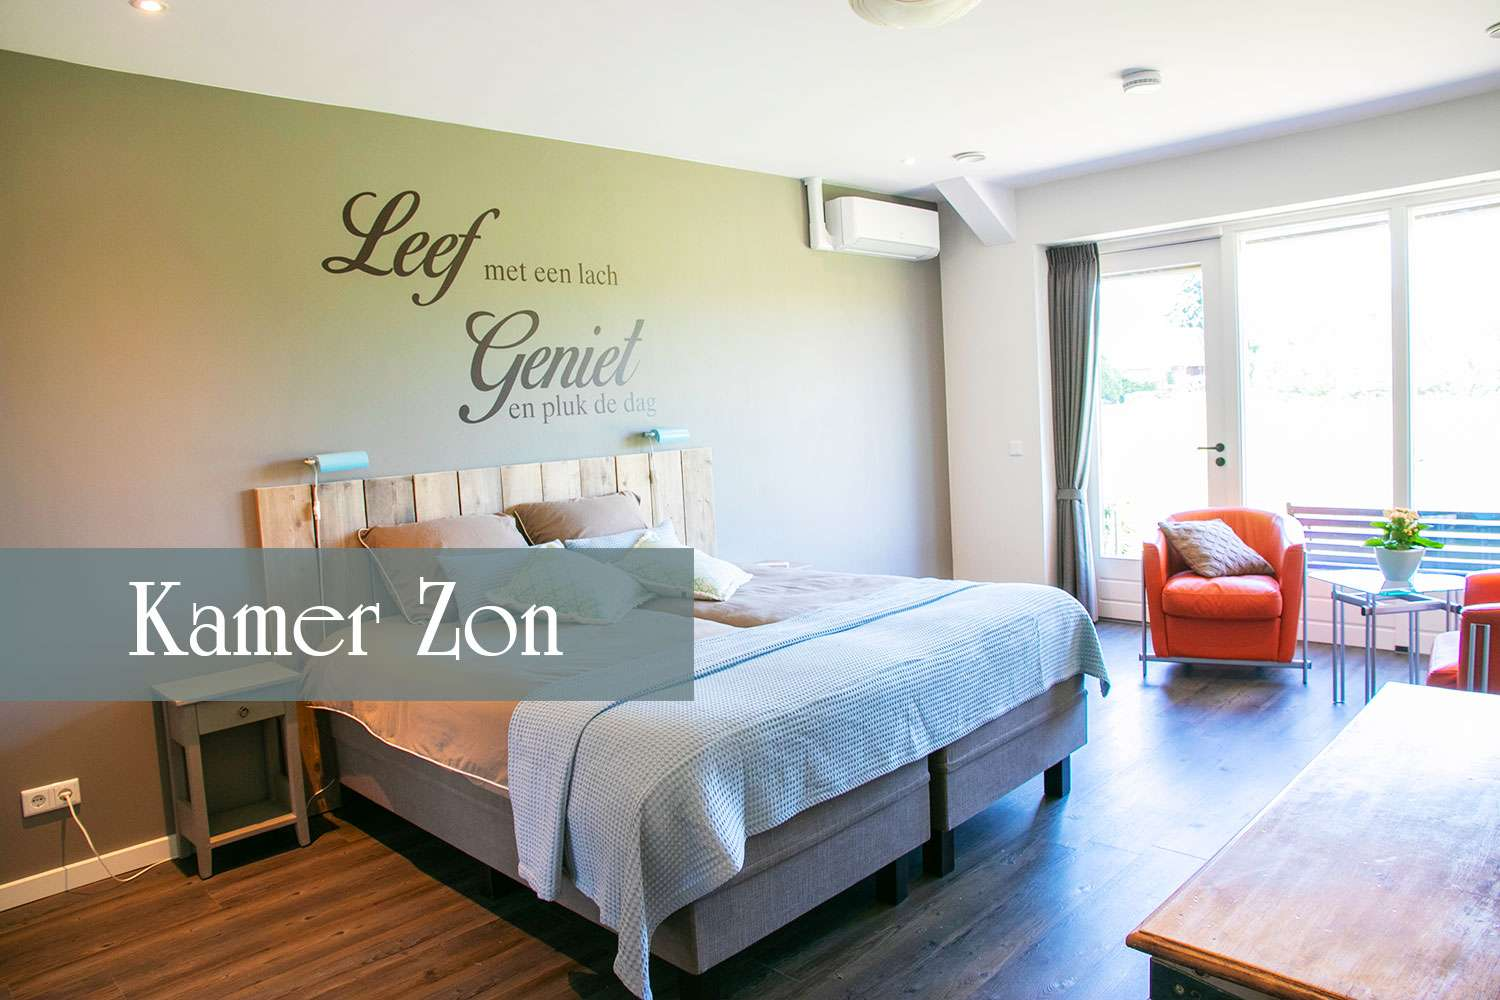 Kamer Zon | Bed and Breakfast In ons Straatje, Kruisstraat Rosmalen - Noord-Brabant